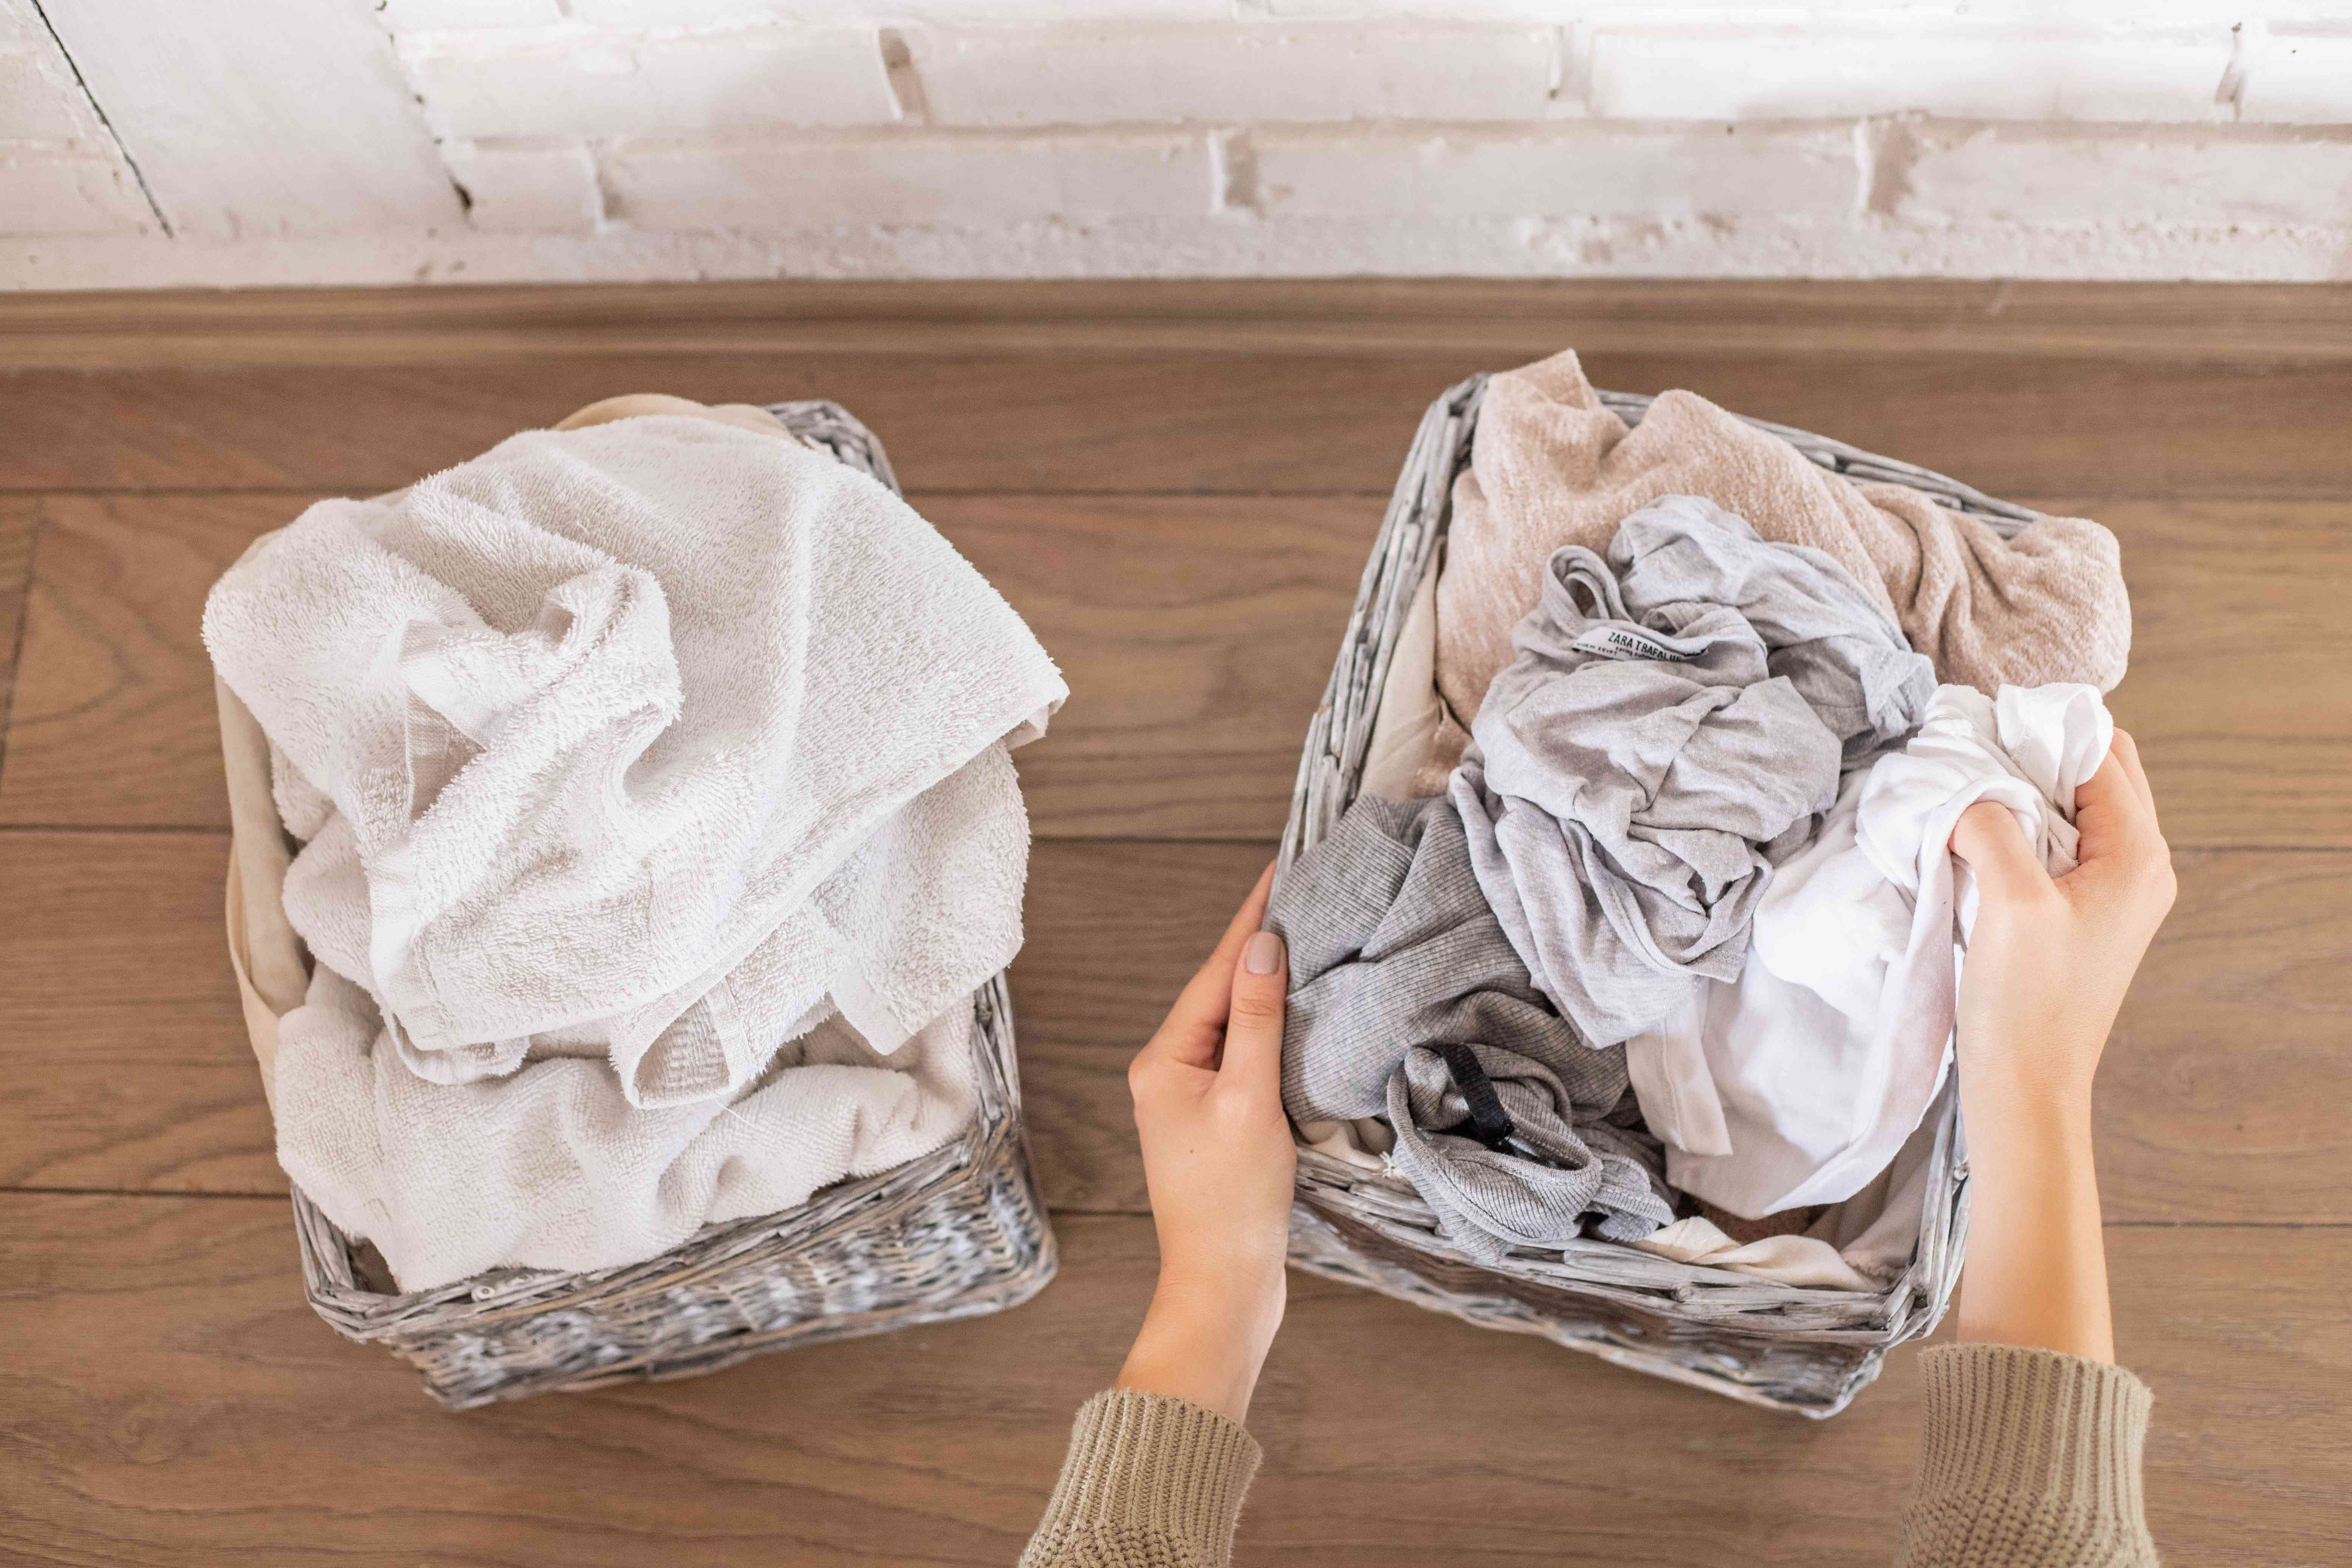 hands separate and fold laundry overhead shot